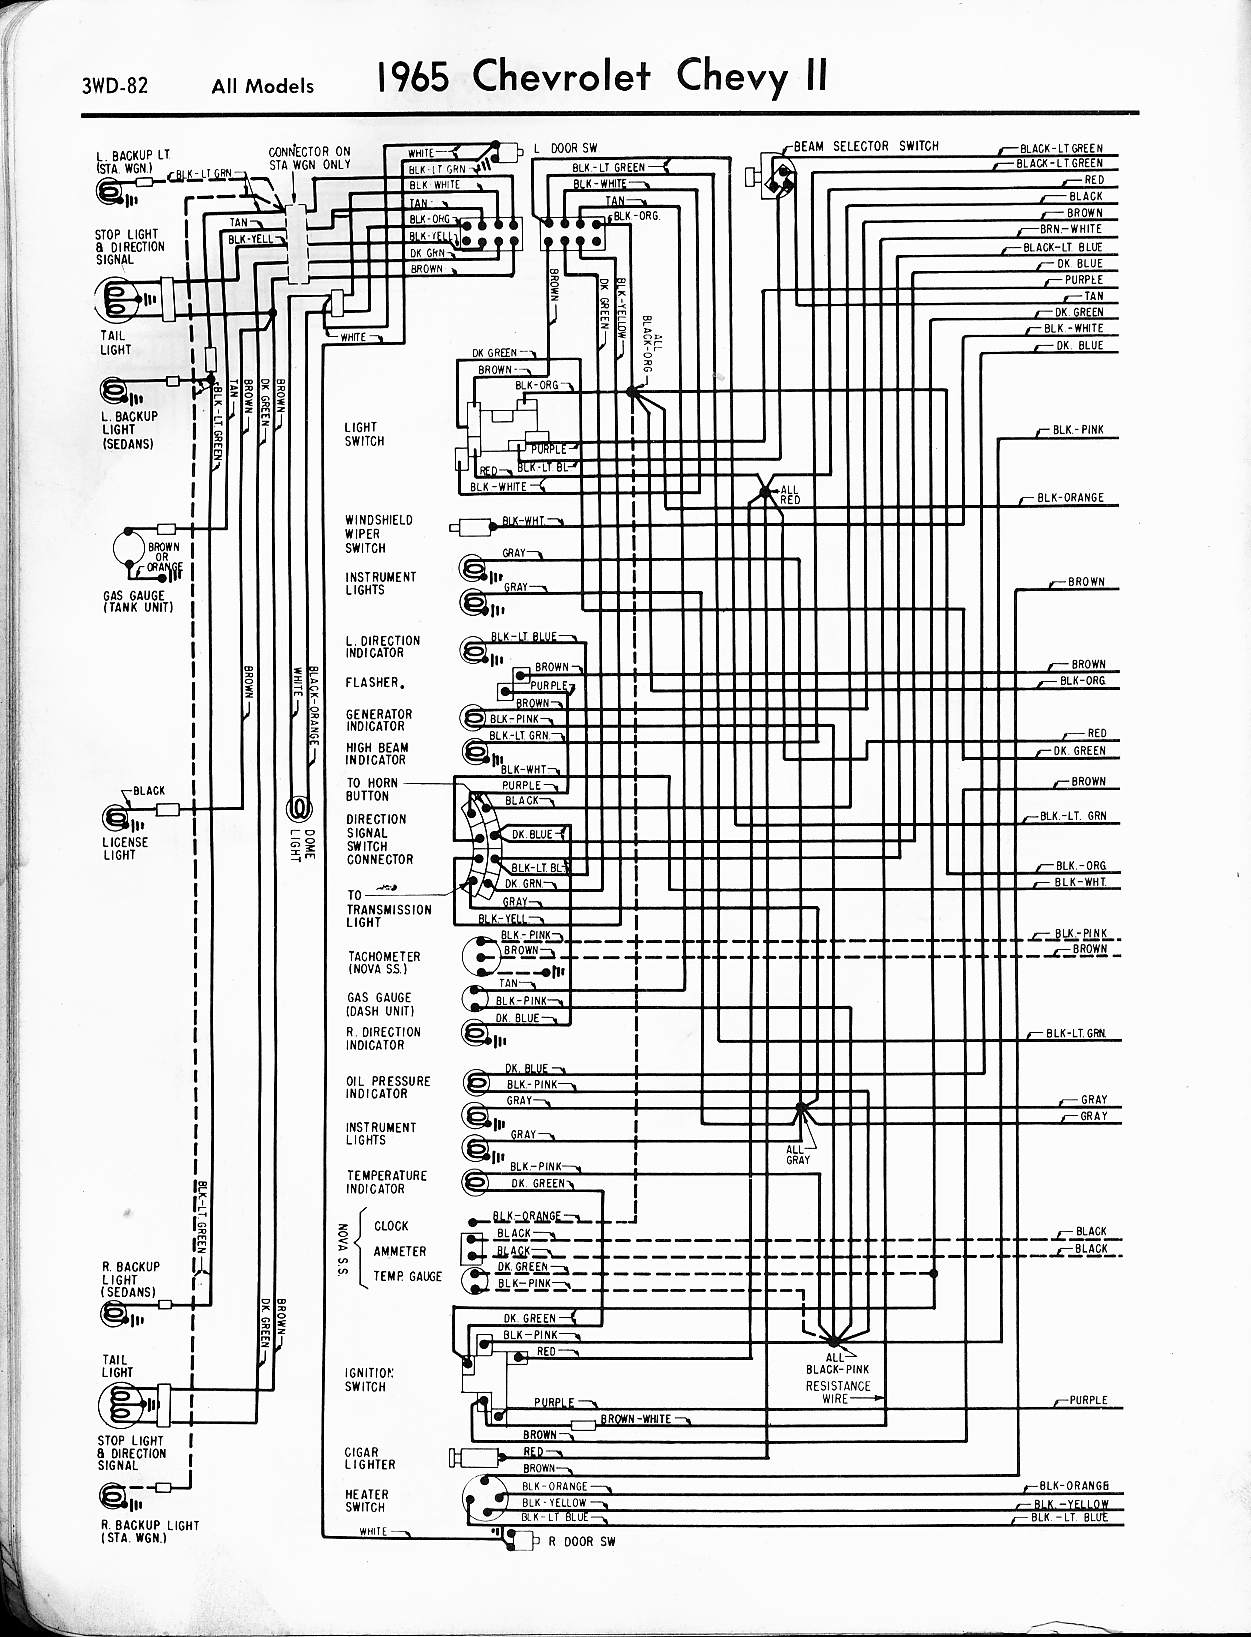 1965 Chevy II Wiring Diagram: ...